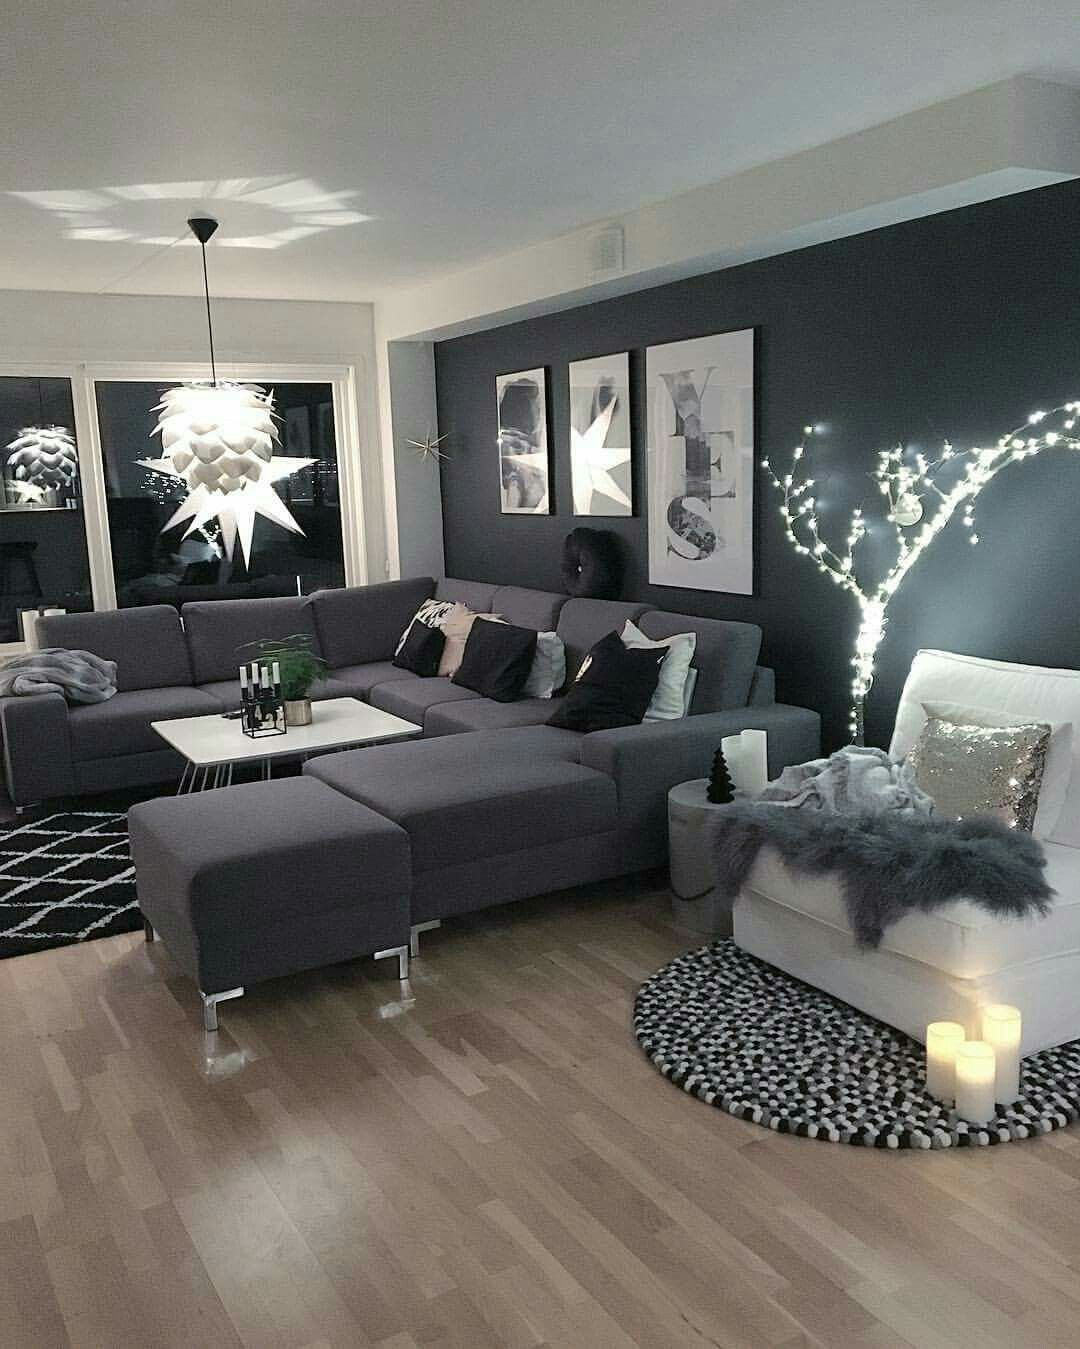 Pinterest thephotown magazine lifestyle lille salon livingroom gray living roomsblack and white also rh